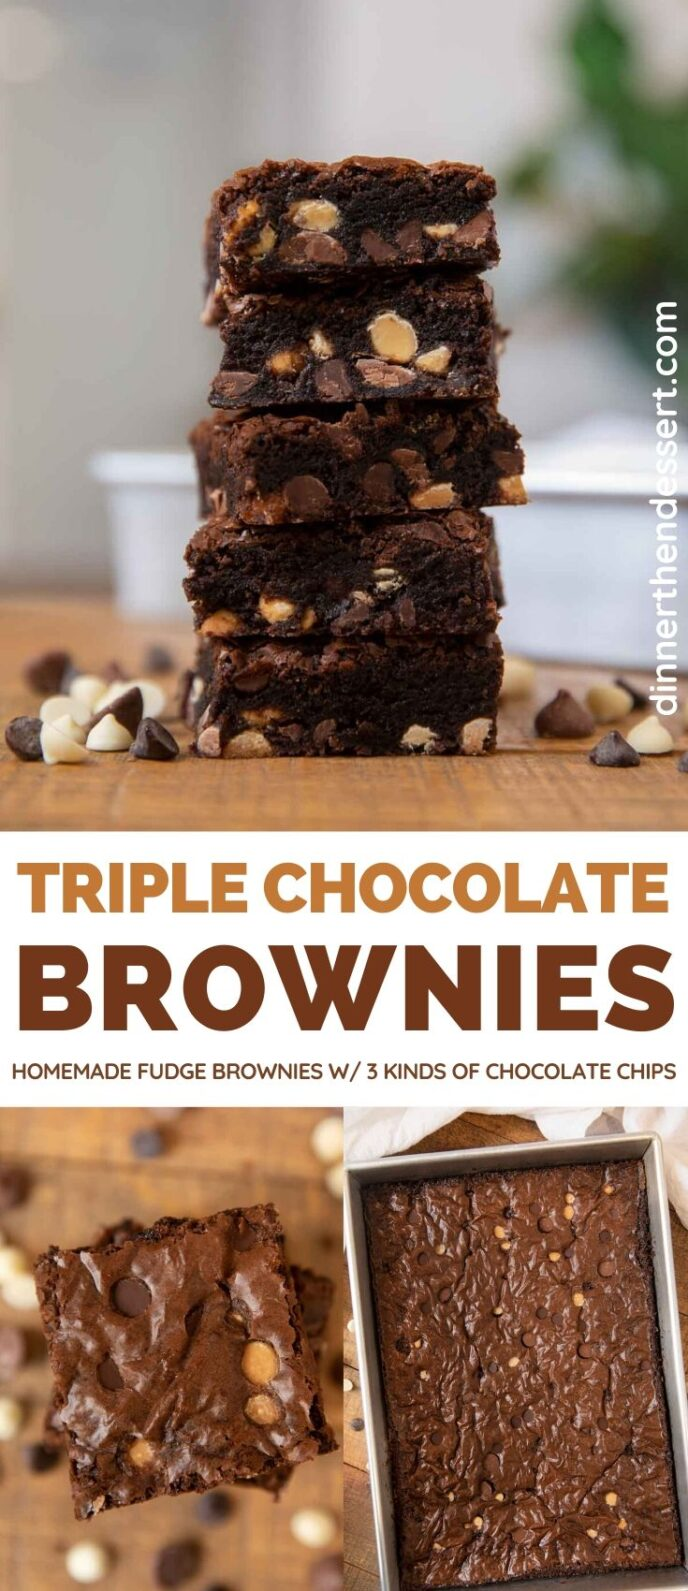 Triple Chocolate Brownies collage